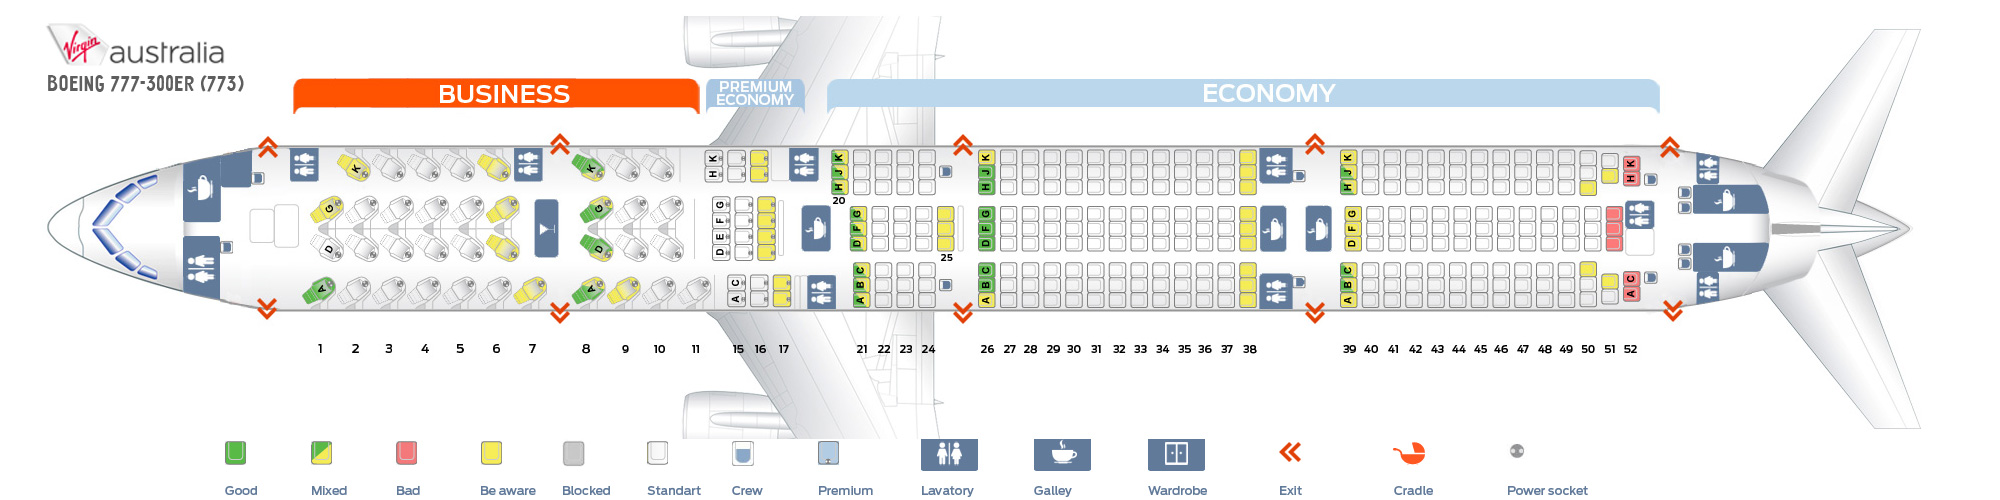 Virgin Australia 777 300er Seat Map.Seat Map Boeing 777 300 Virgin Australia Best Seats In The